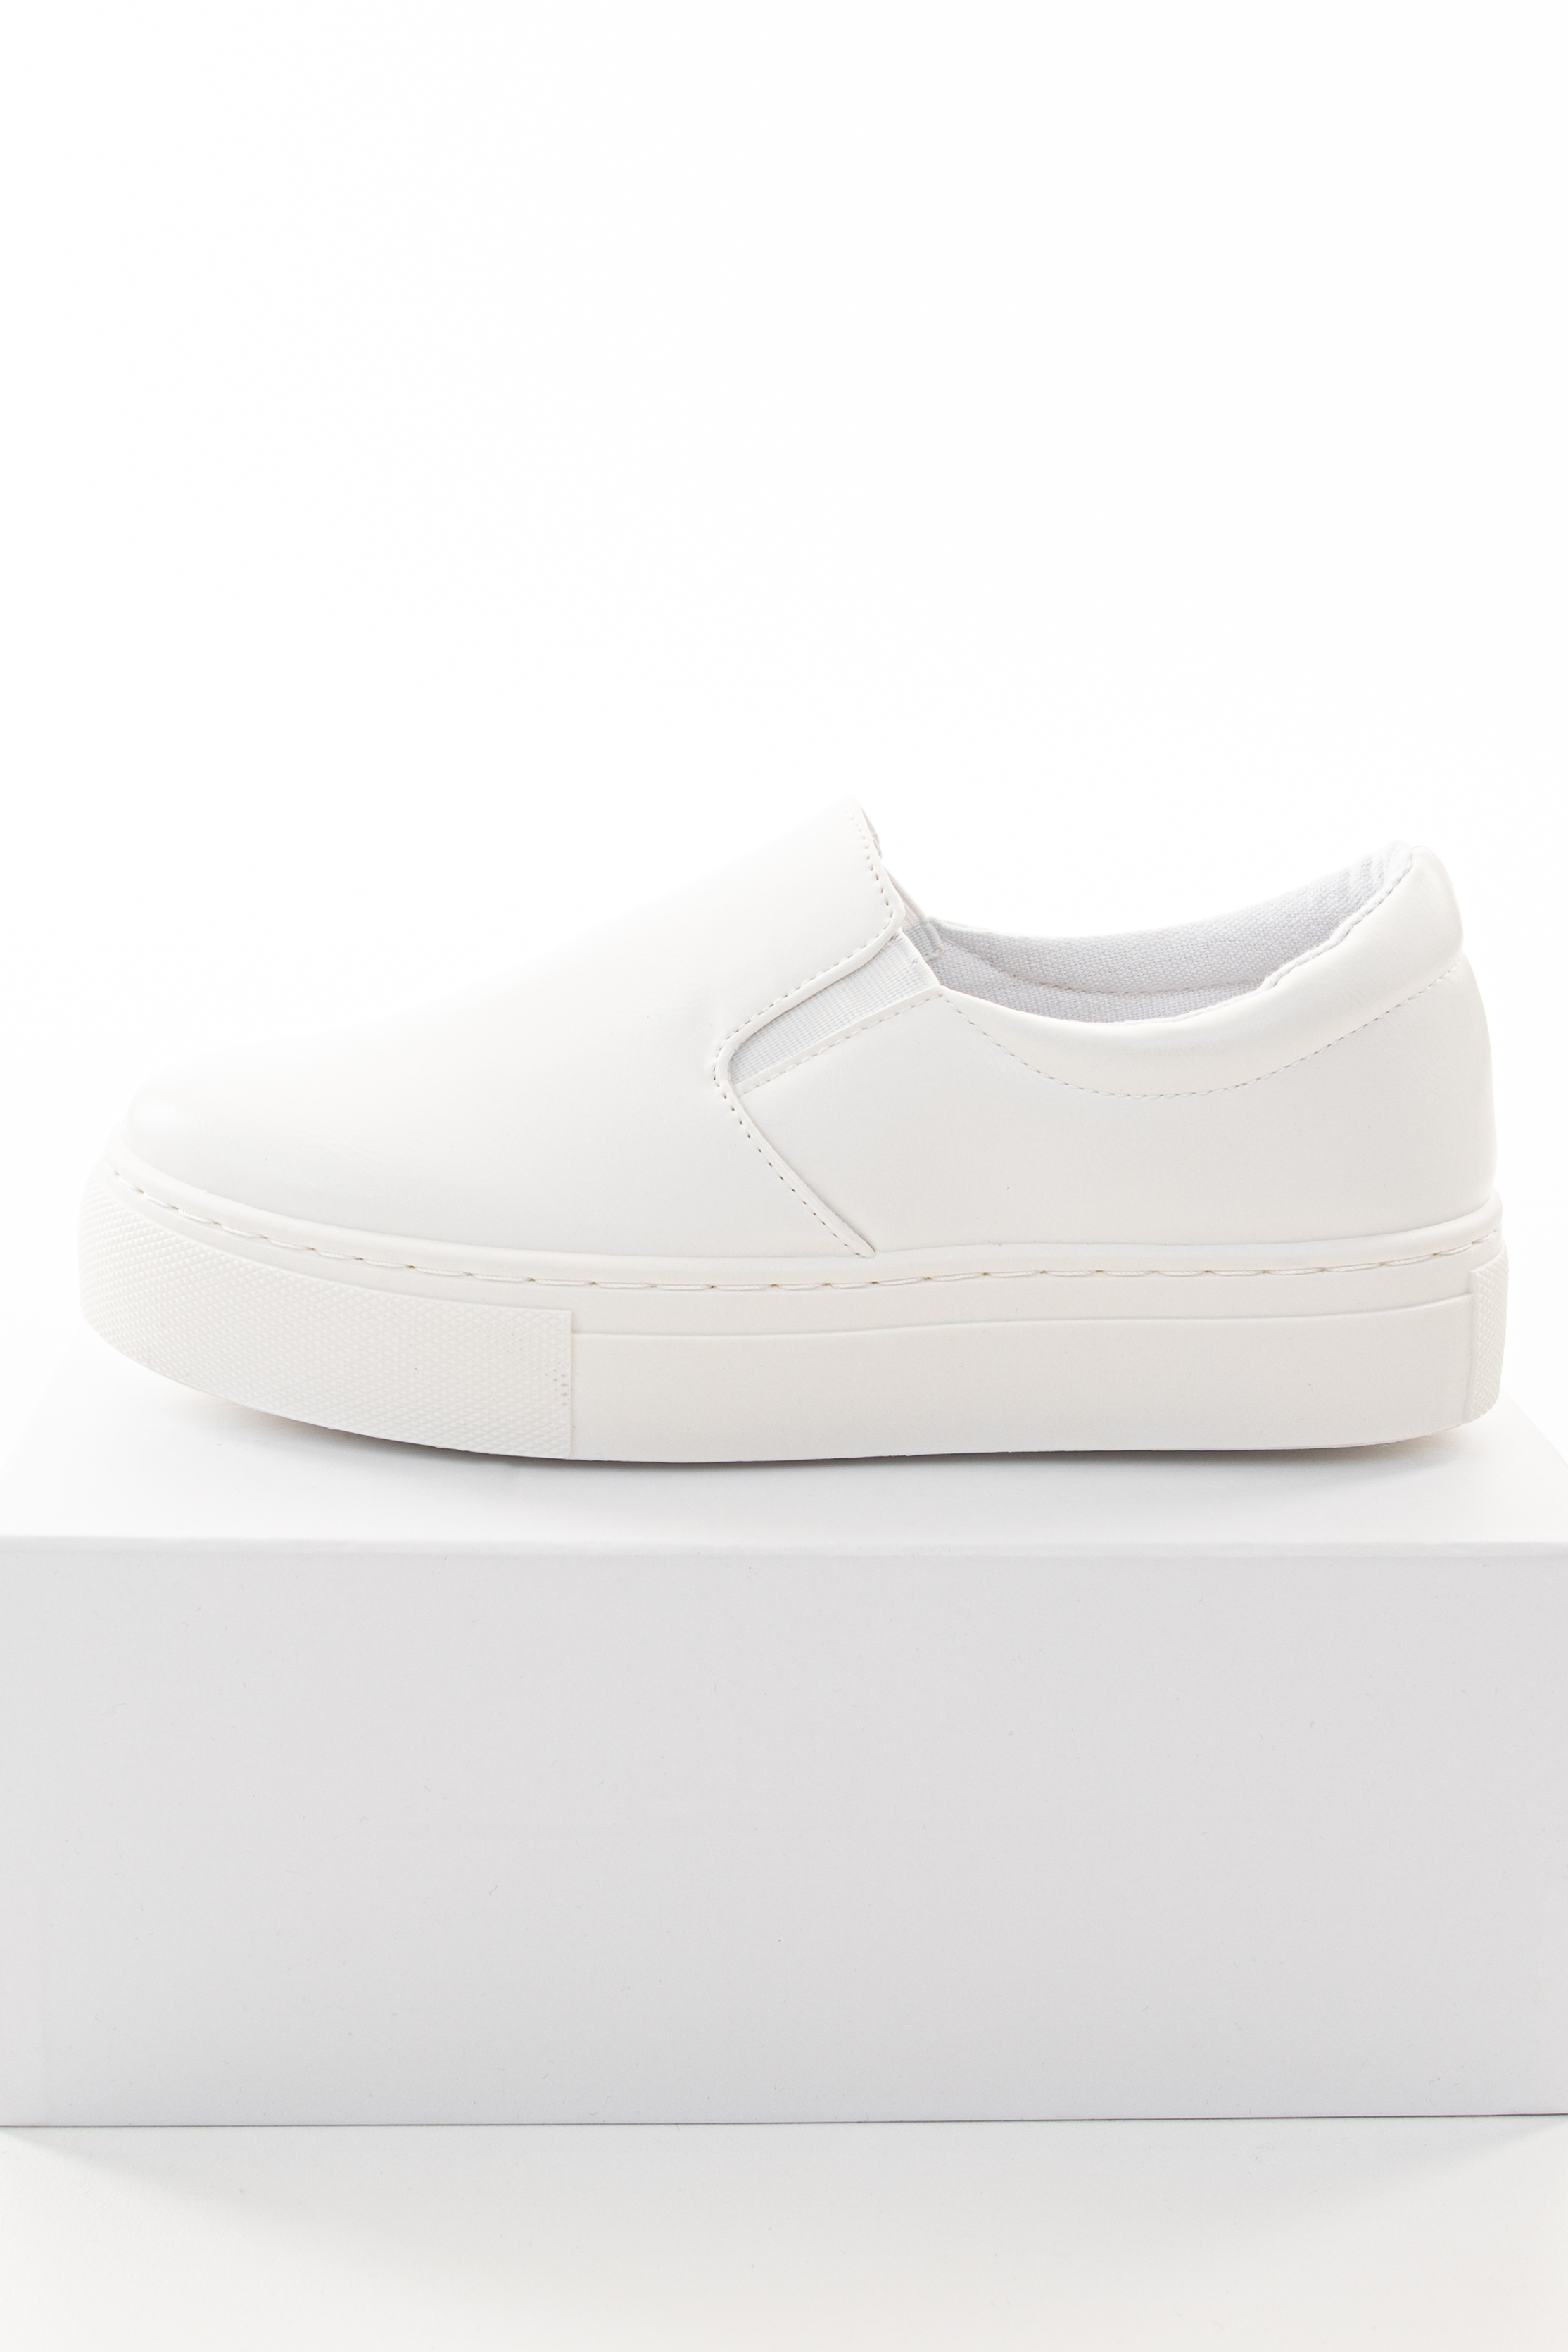 White Faux Leather Slip On Sneakers